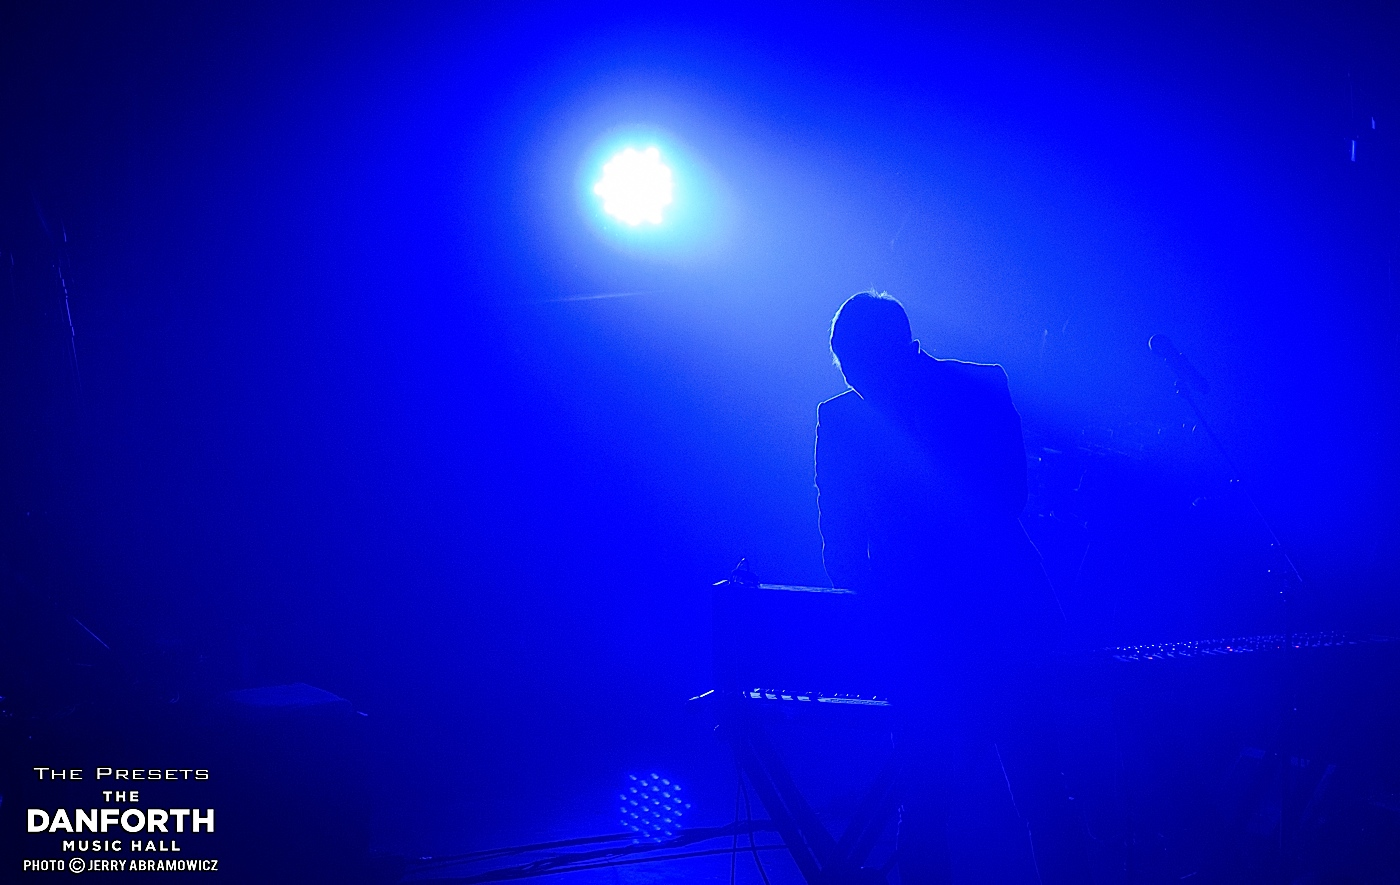 20130510 The Presets perform at The Danforth Music Hall Toronto 0733